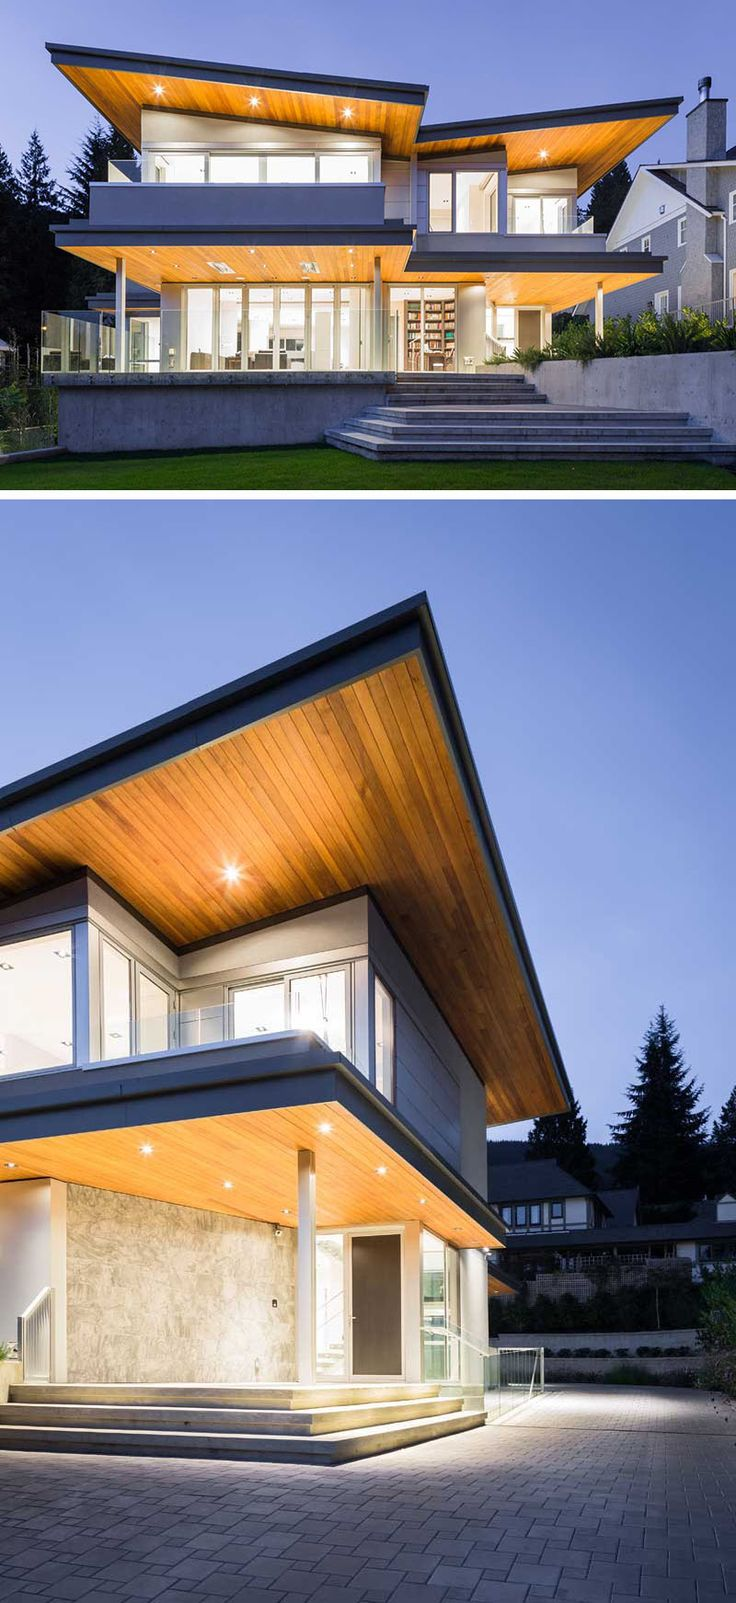 Best Images About House On Pinterest - Northwest home designs